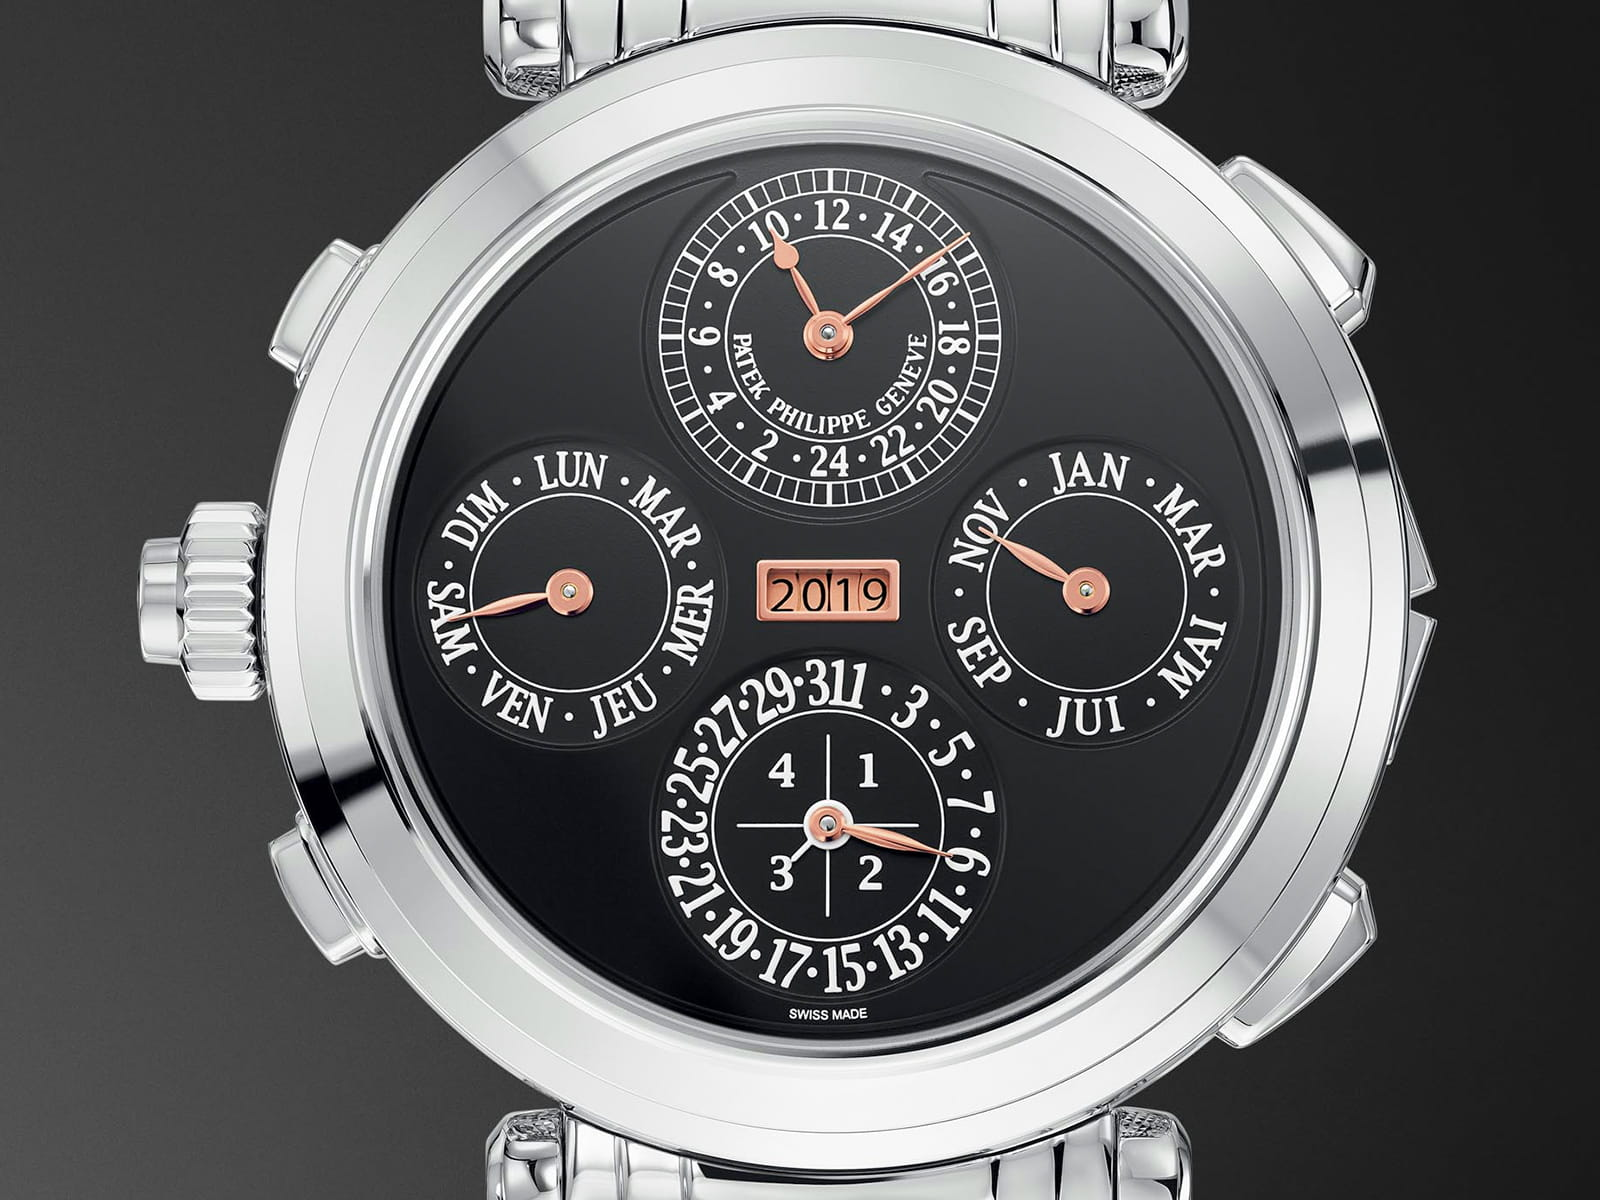 6300a-010-patek-philippe-6300a-steel-grandmaster-chime-only-watch-2019-4.jpg